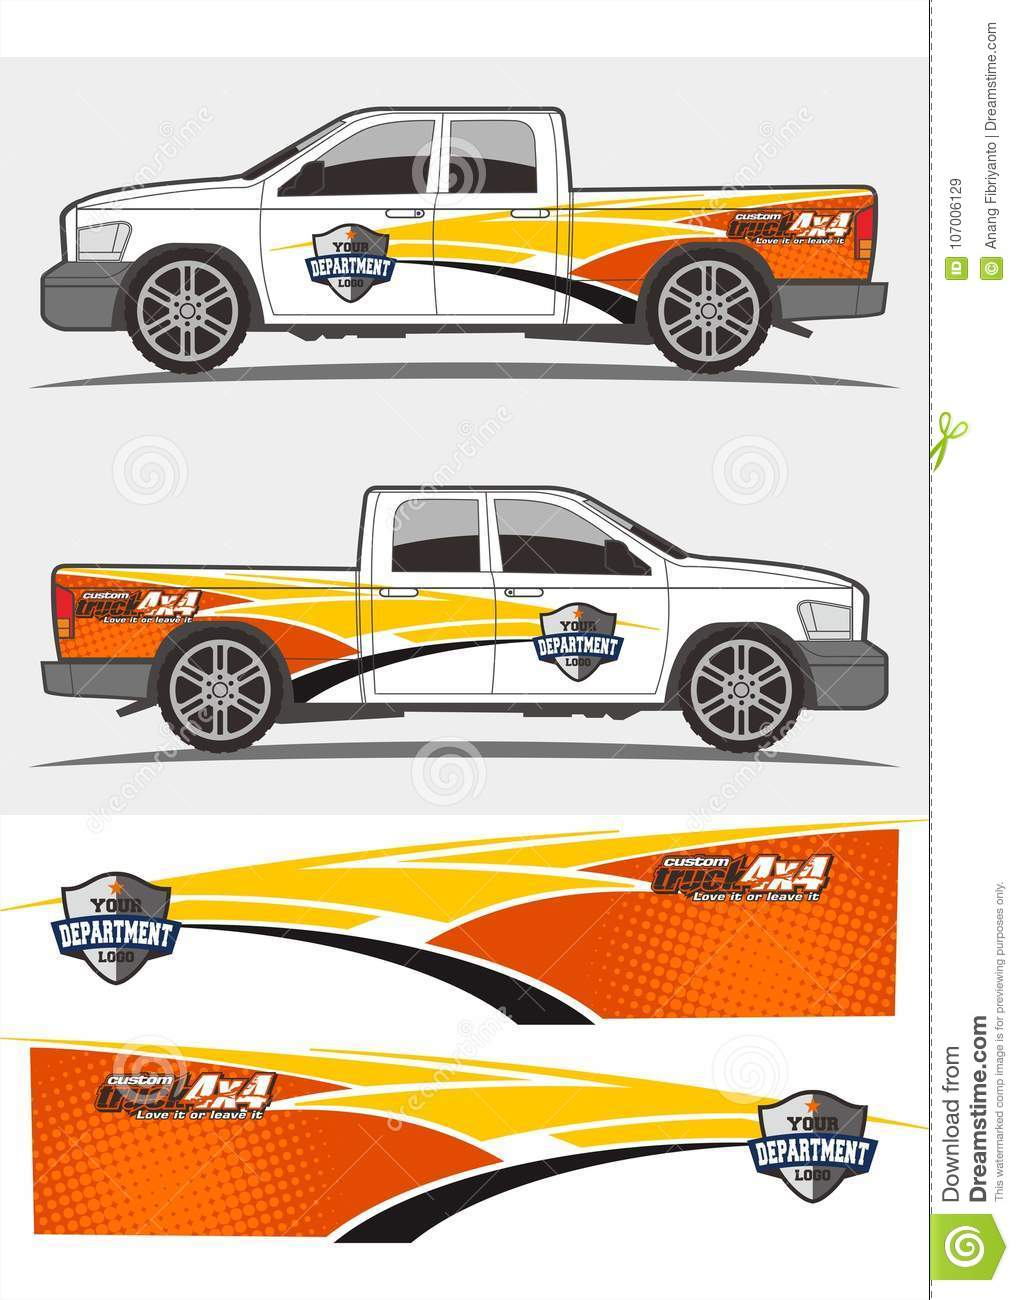 Truck and vehicle decal graphics kits design tribal graphics kits for truck and other vehicles decals and stickers colorful decal design kits for trucks